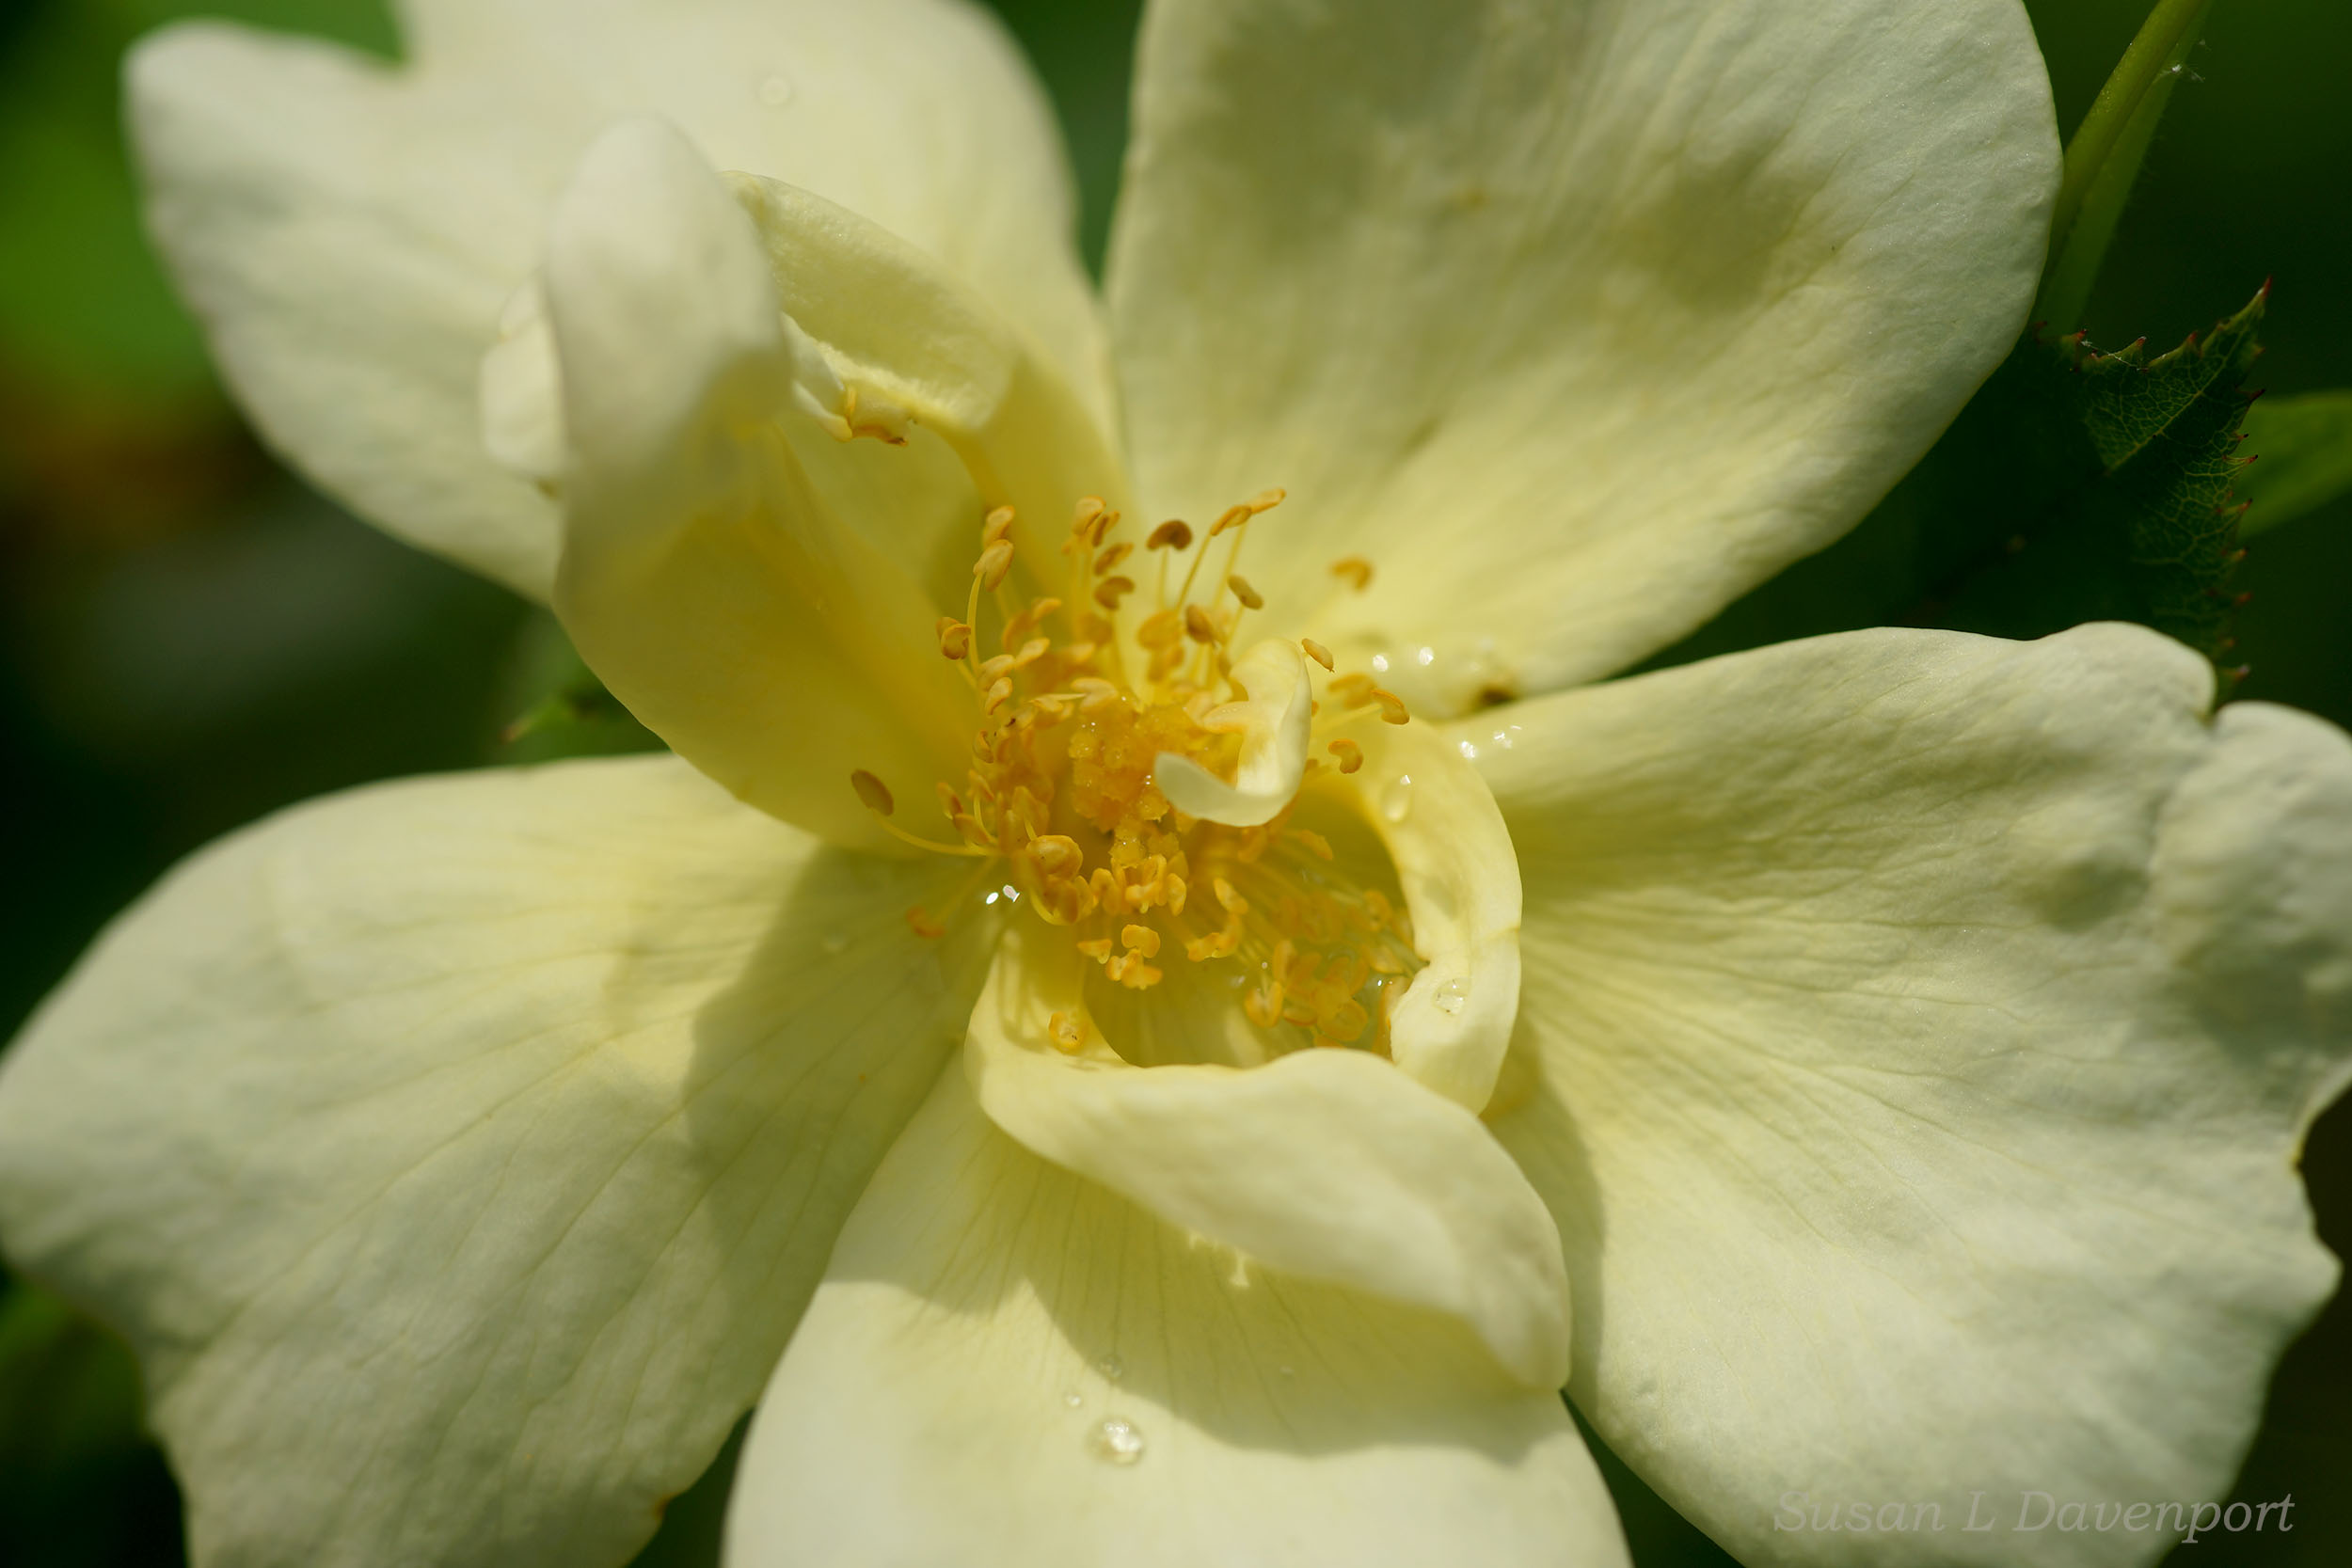 Yellow Rose After a Rain - Photo by Susan L. Davenport